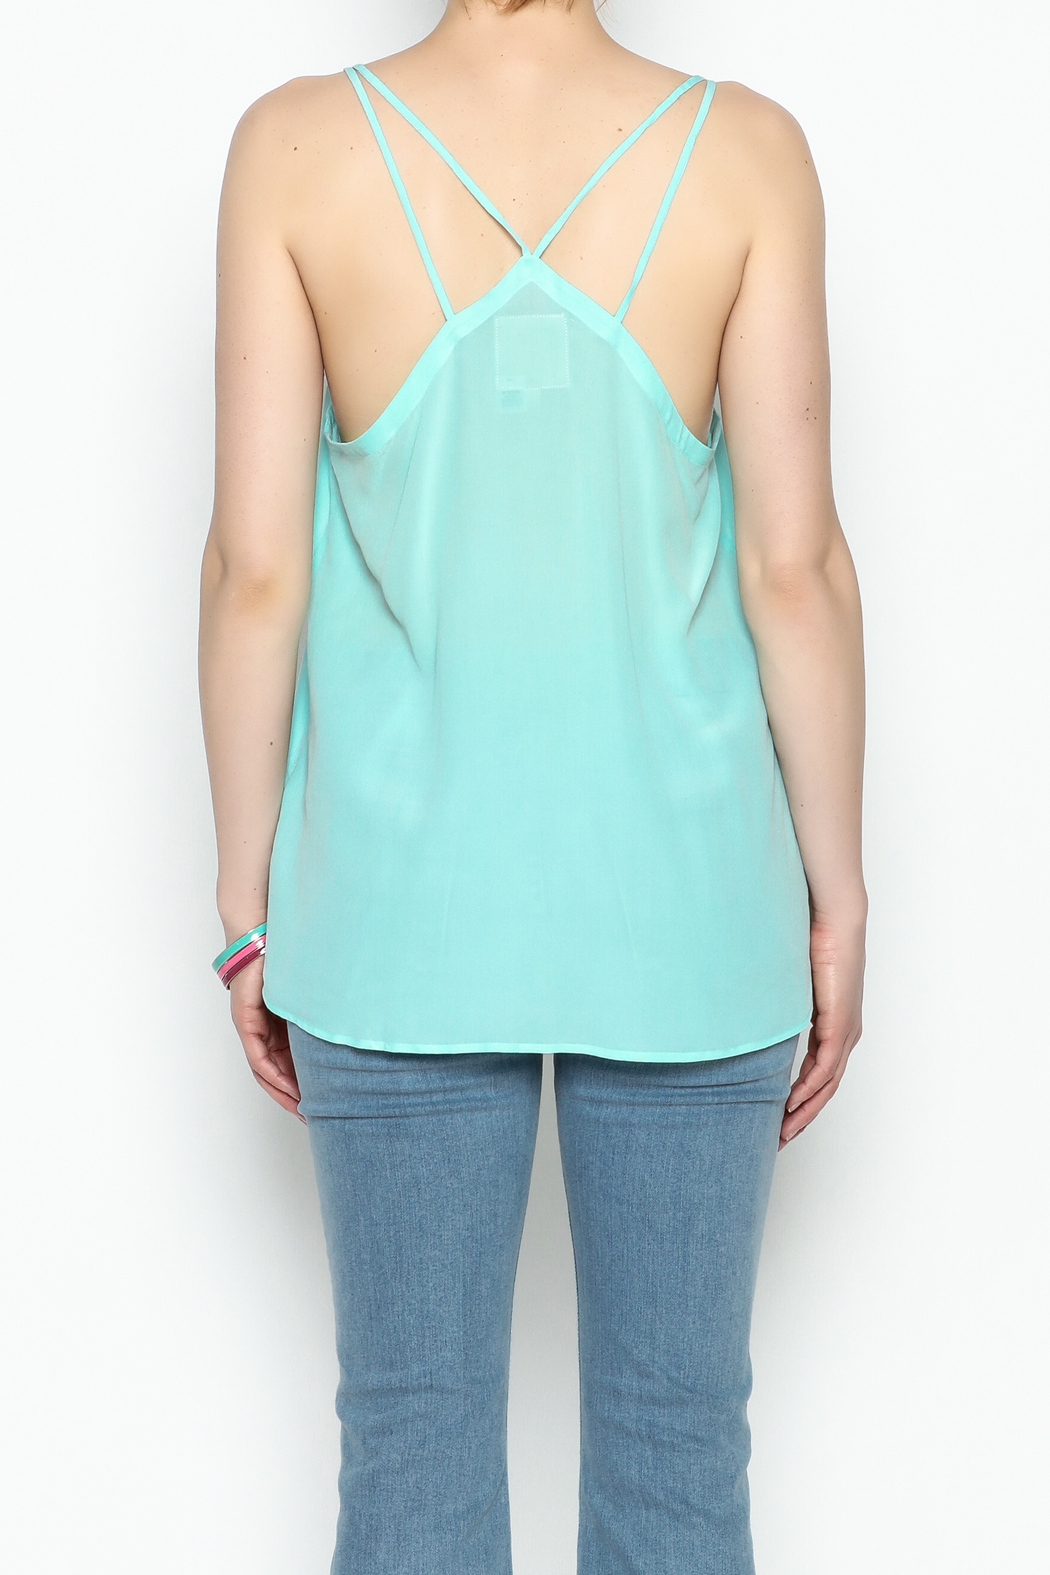 Chaser Turquois Spaghetti Cami - Back Cropped Image